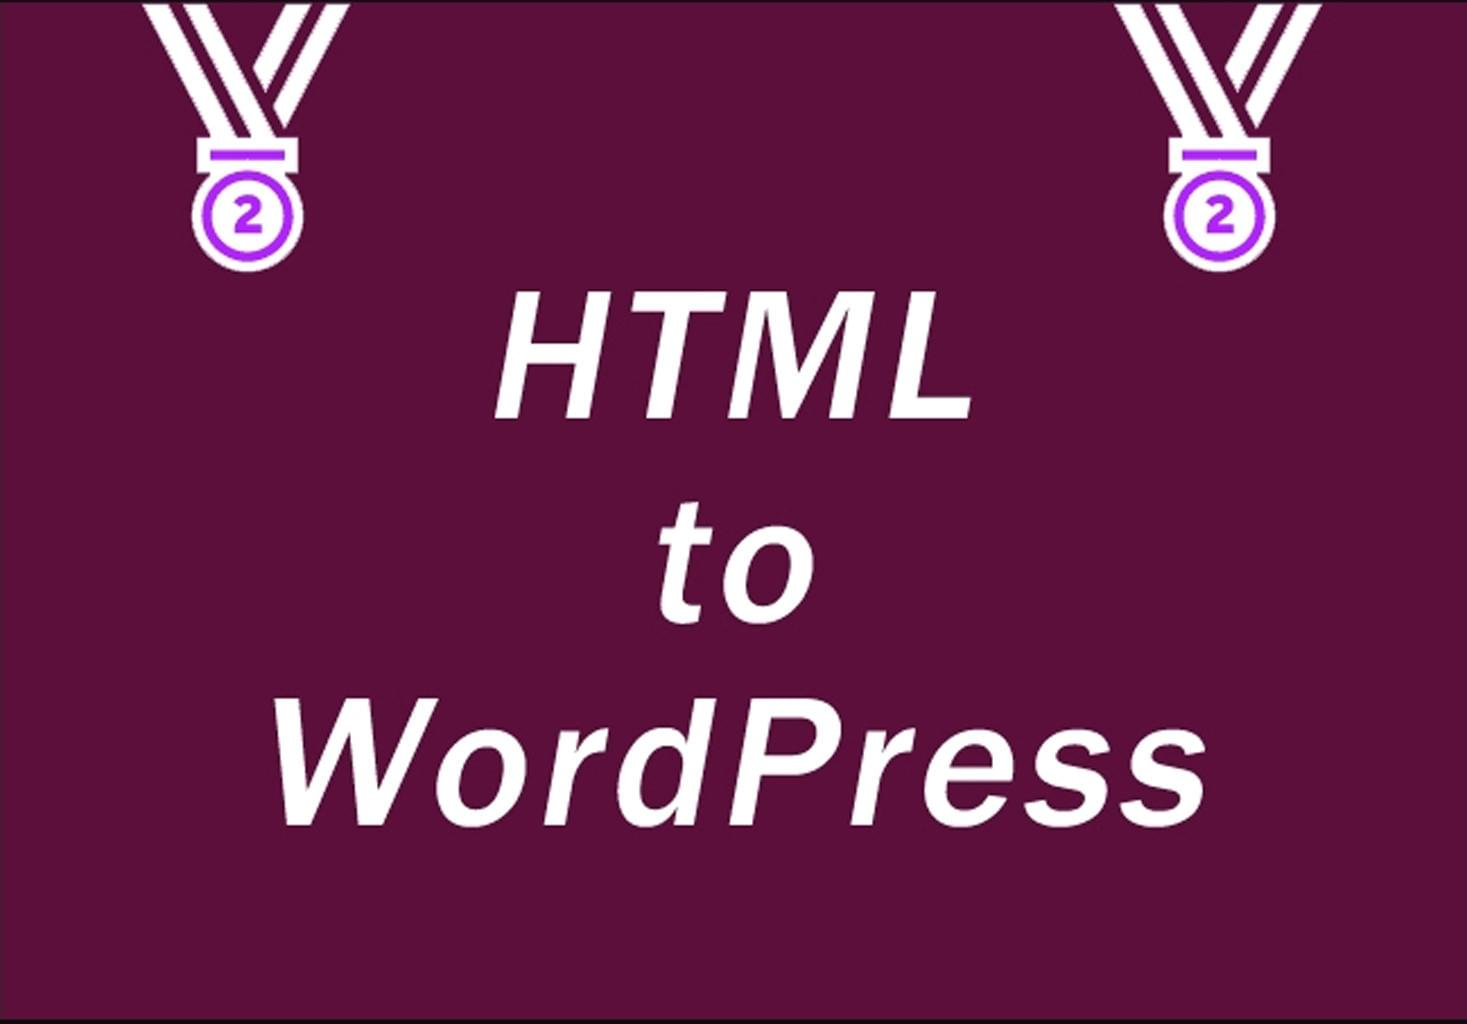 HTML Conversion to WordPress by proga100 - 112045